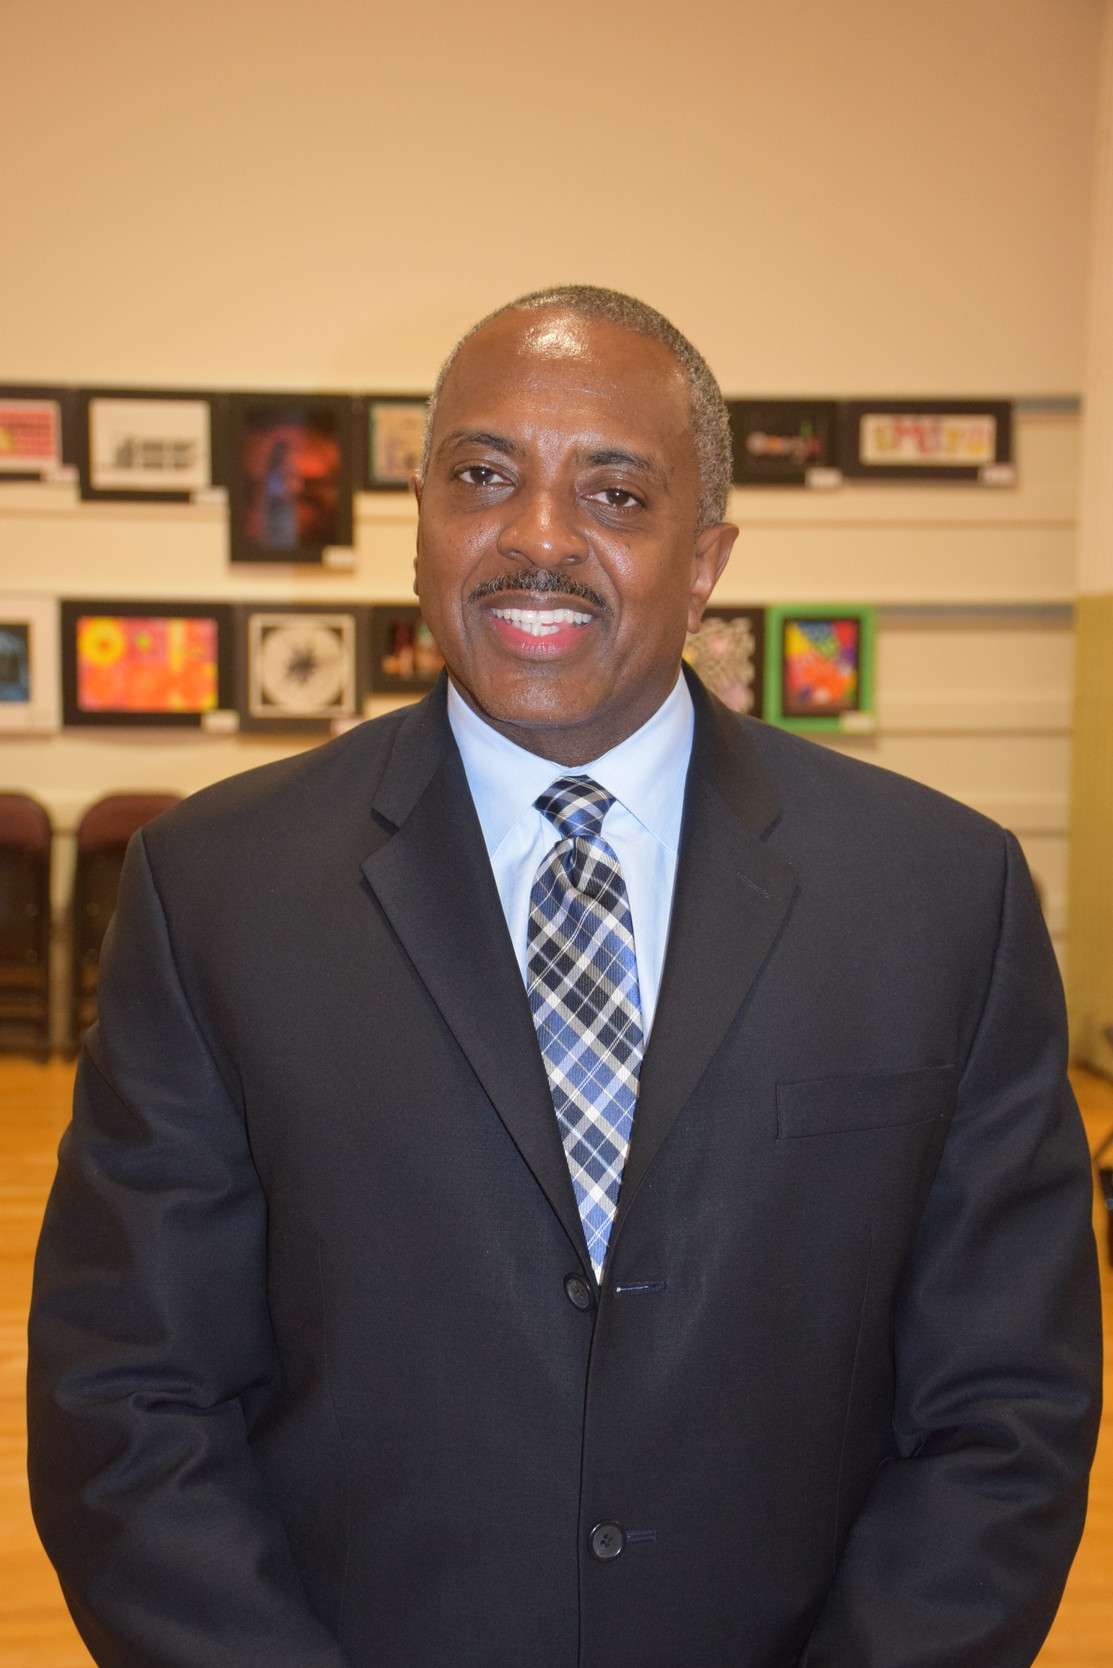 Dr. Kenneth card Jr. officially begins his leadership in the East Meadow School District.